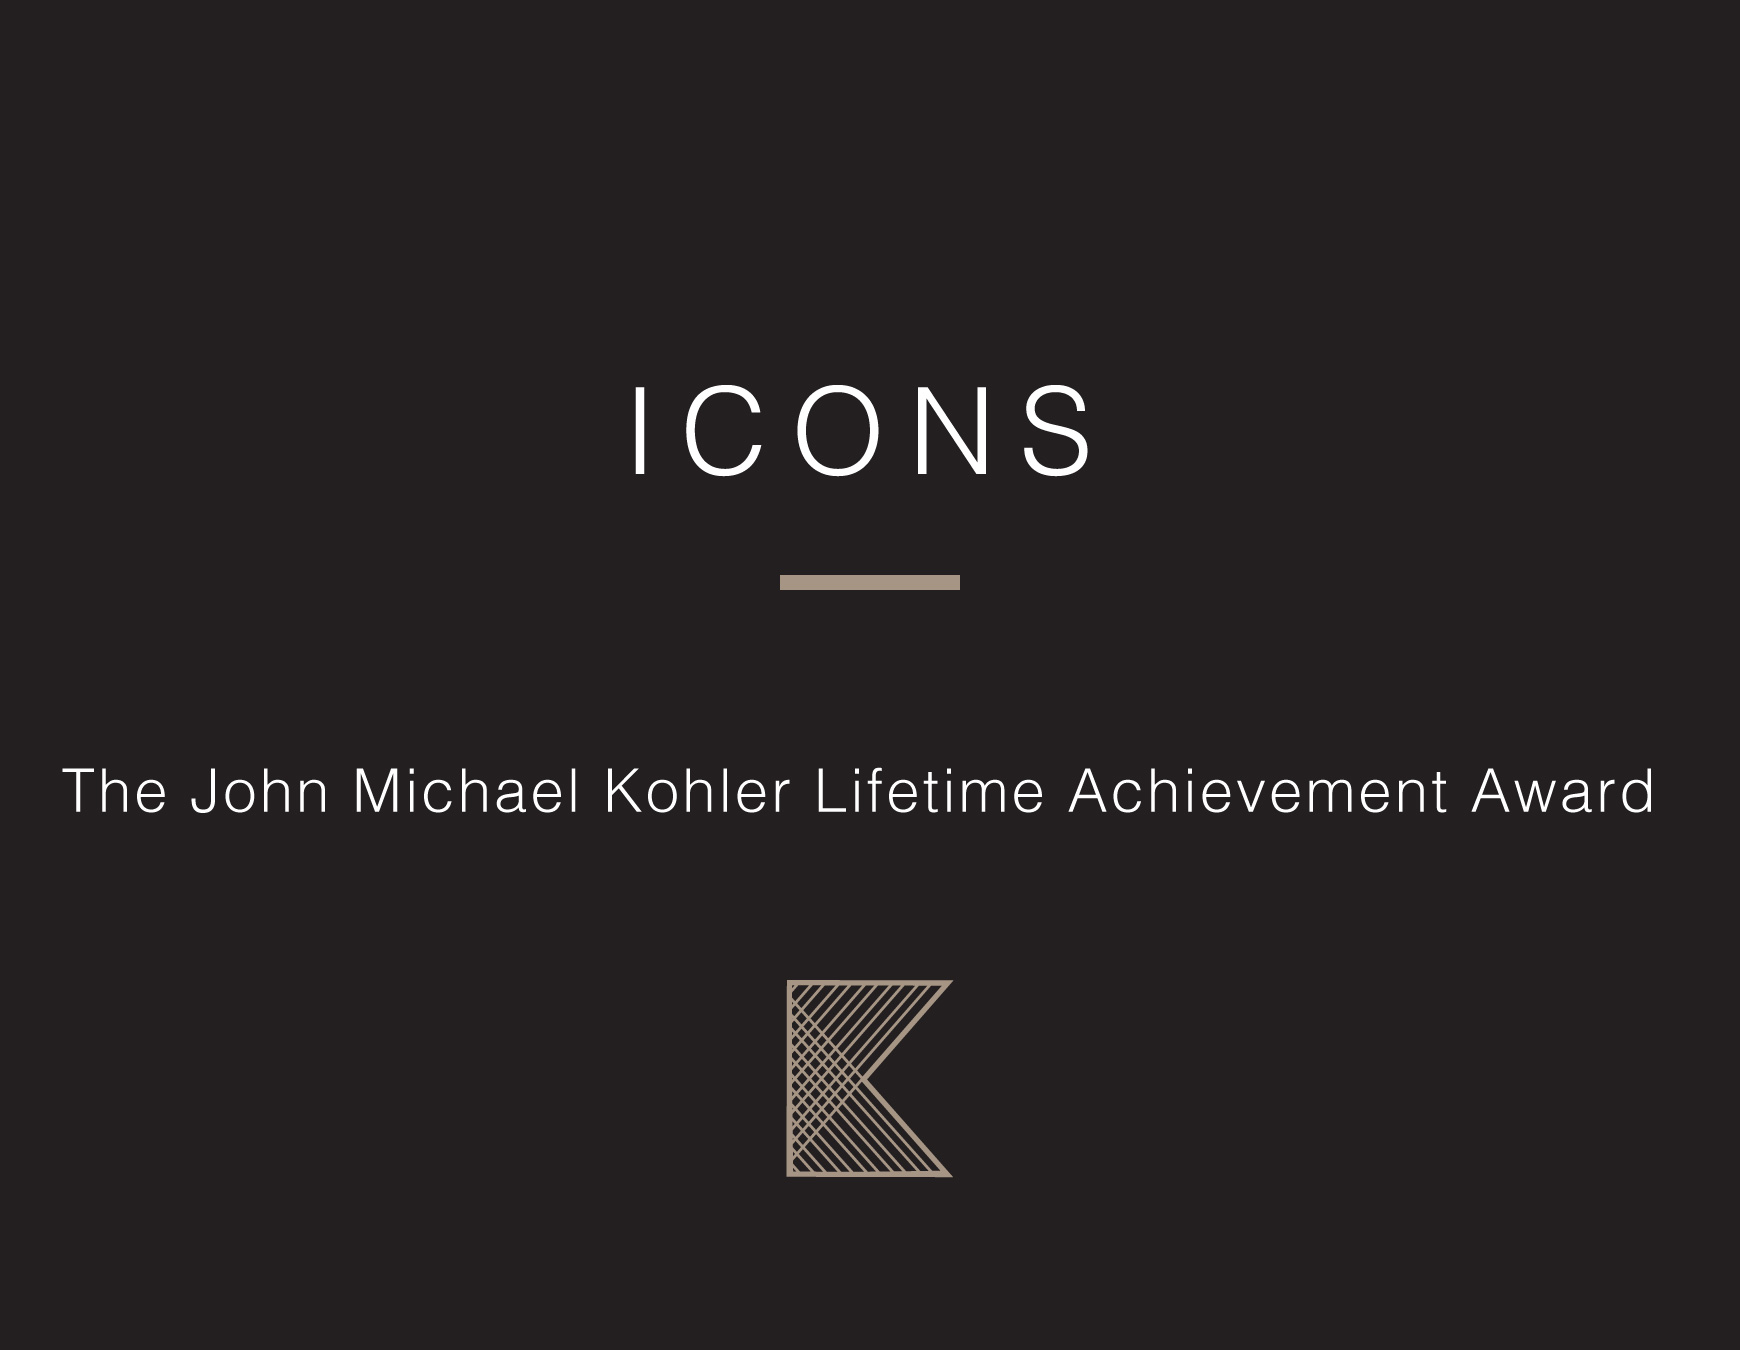 kohler-award-living-copy